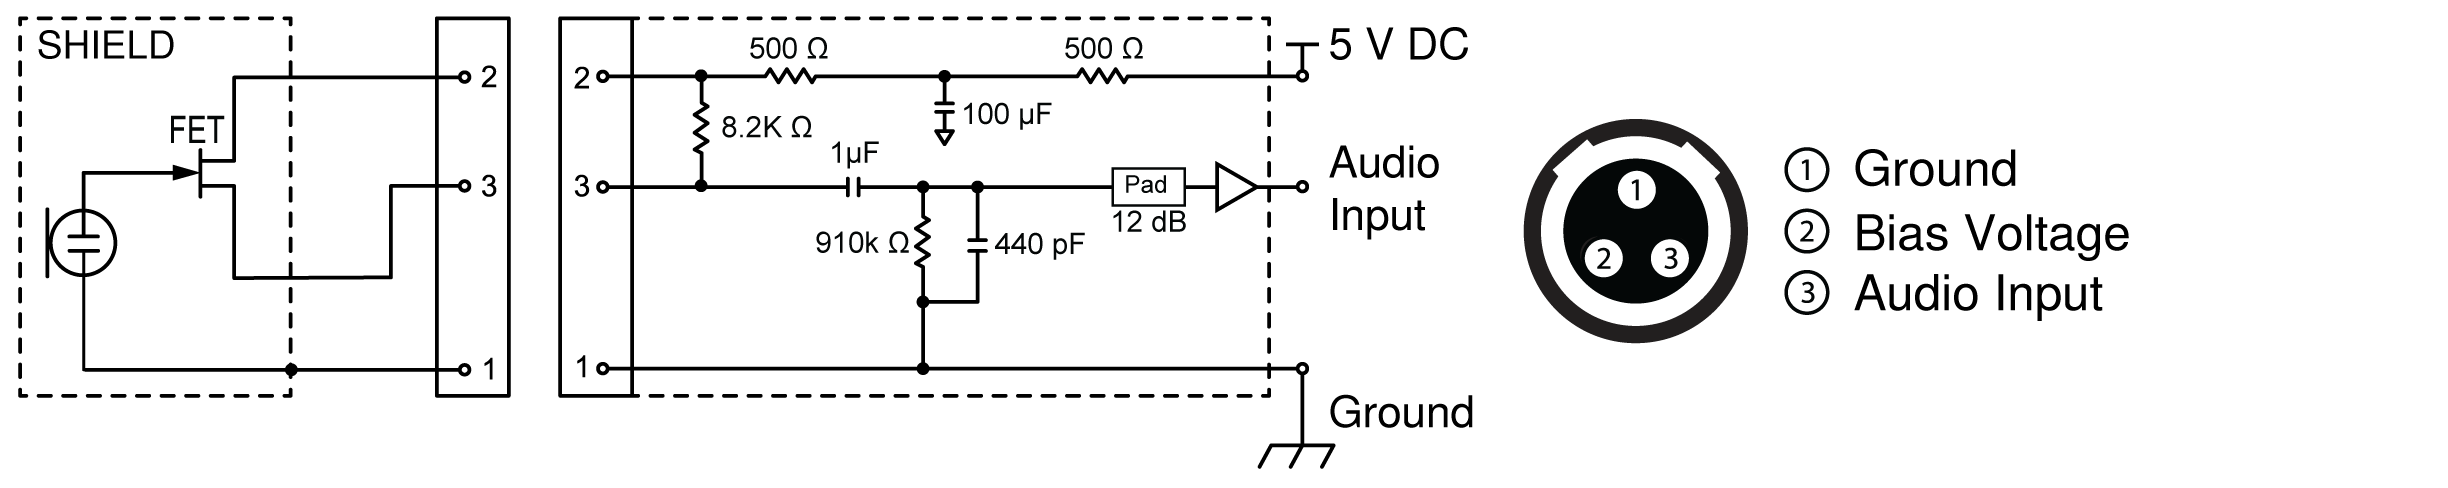 3 5 mm to xlr wiring diagram er for library shure publications | user guides ulx-d dual and quad